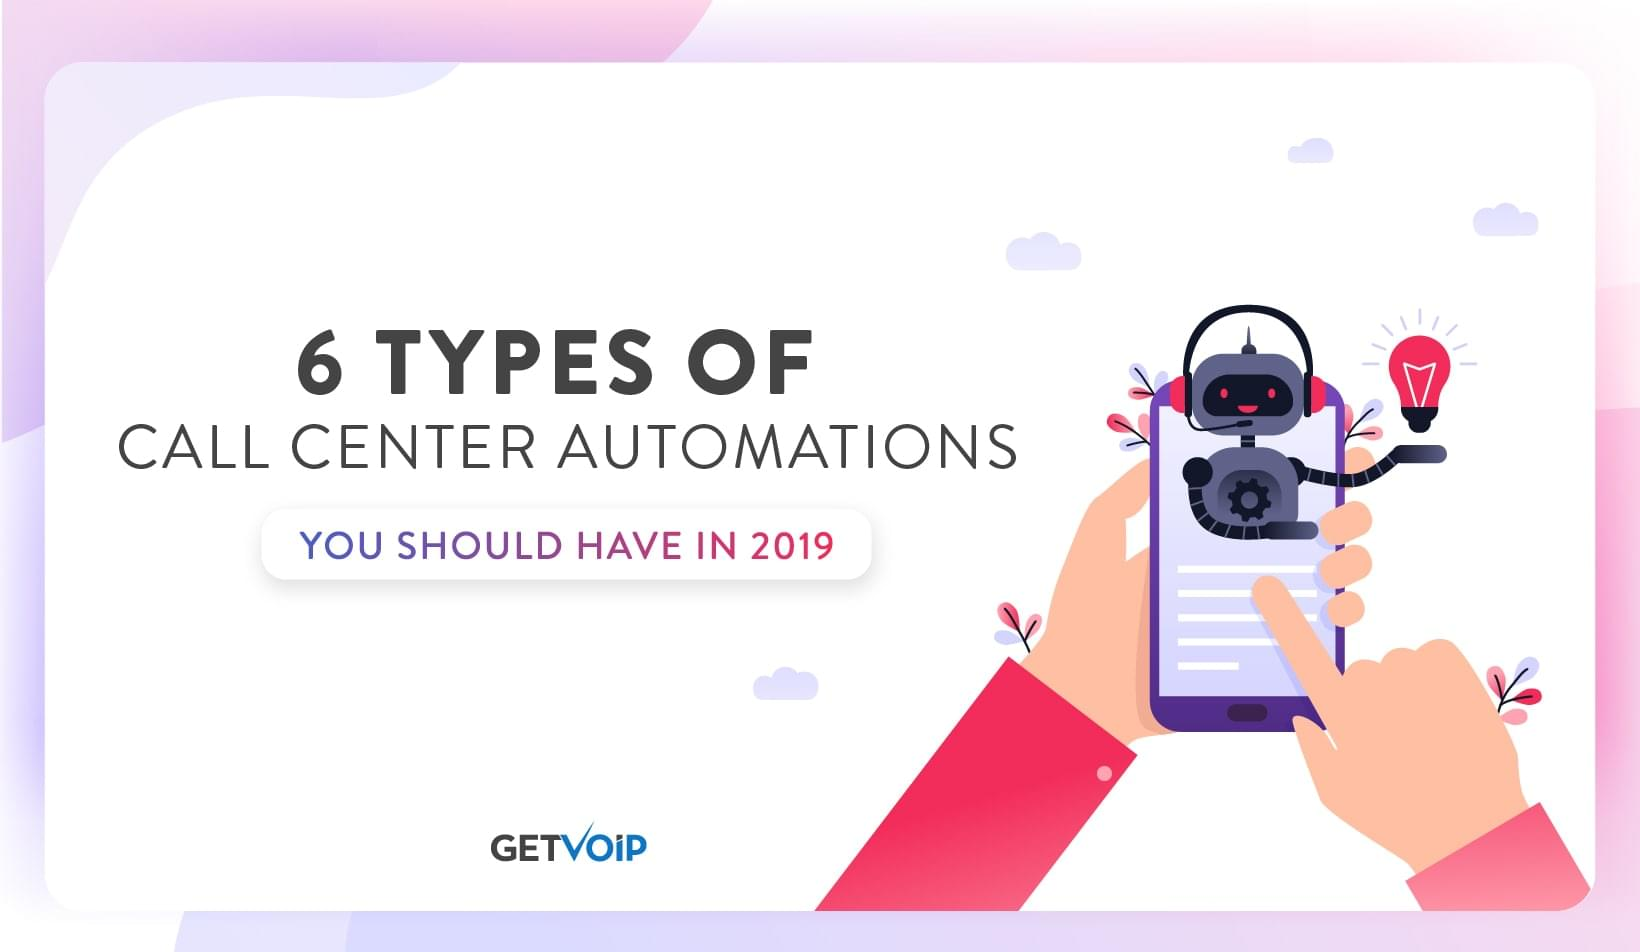 6 Types of Call Center Automations You Should Have in 2019